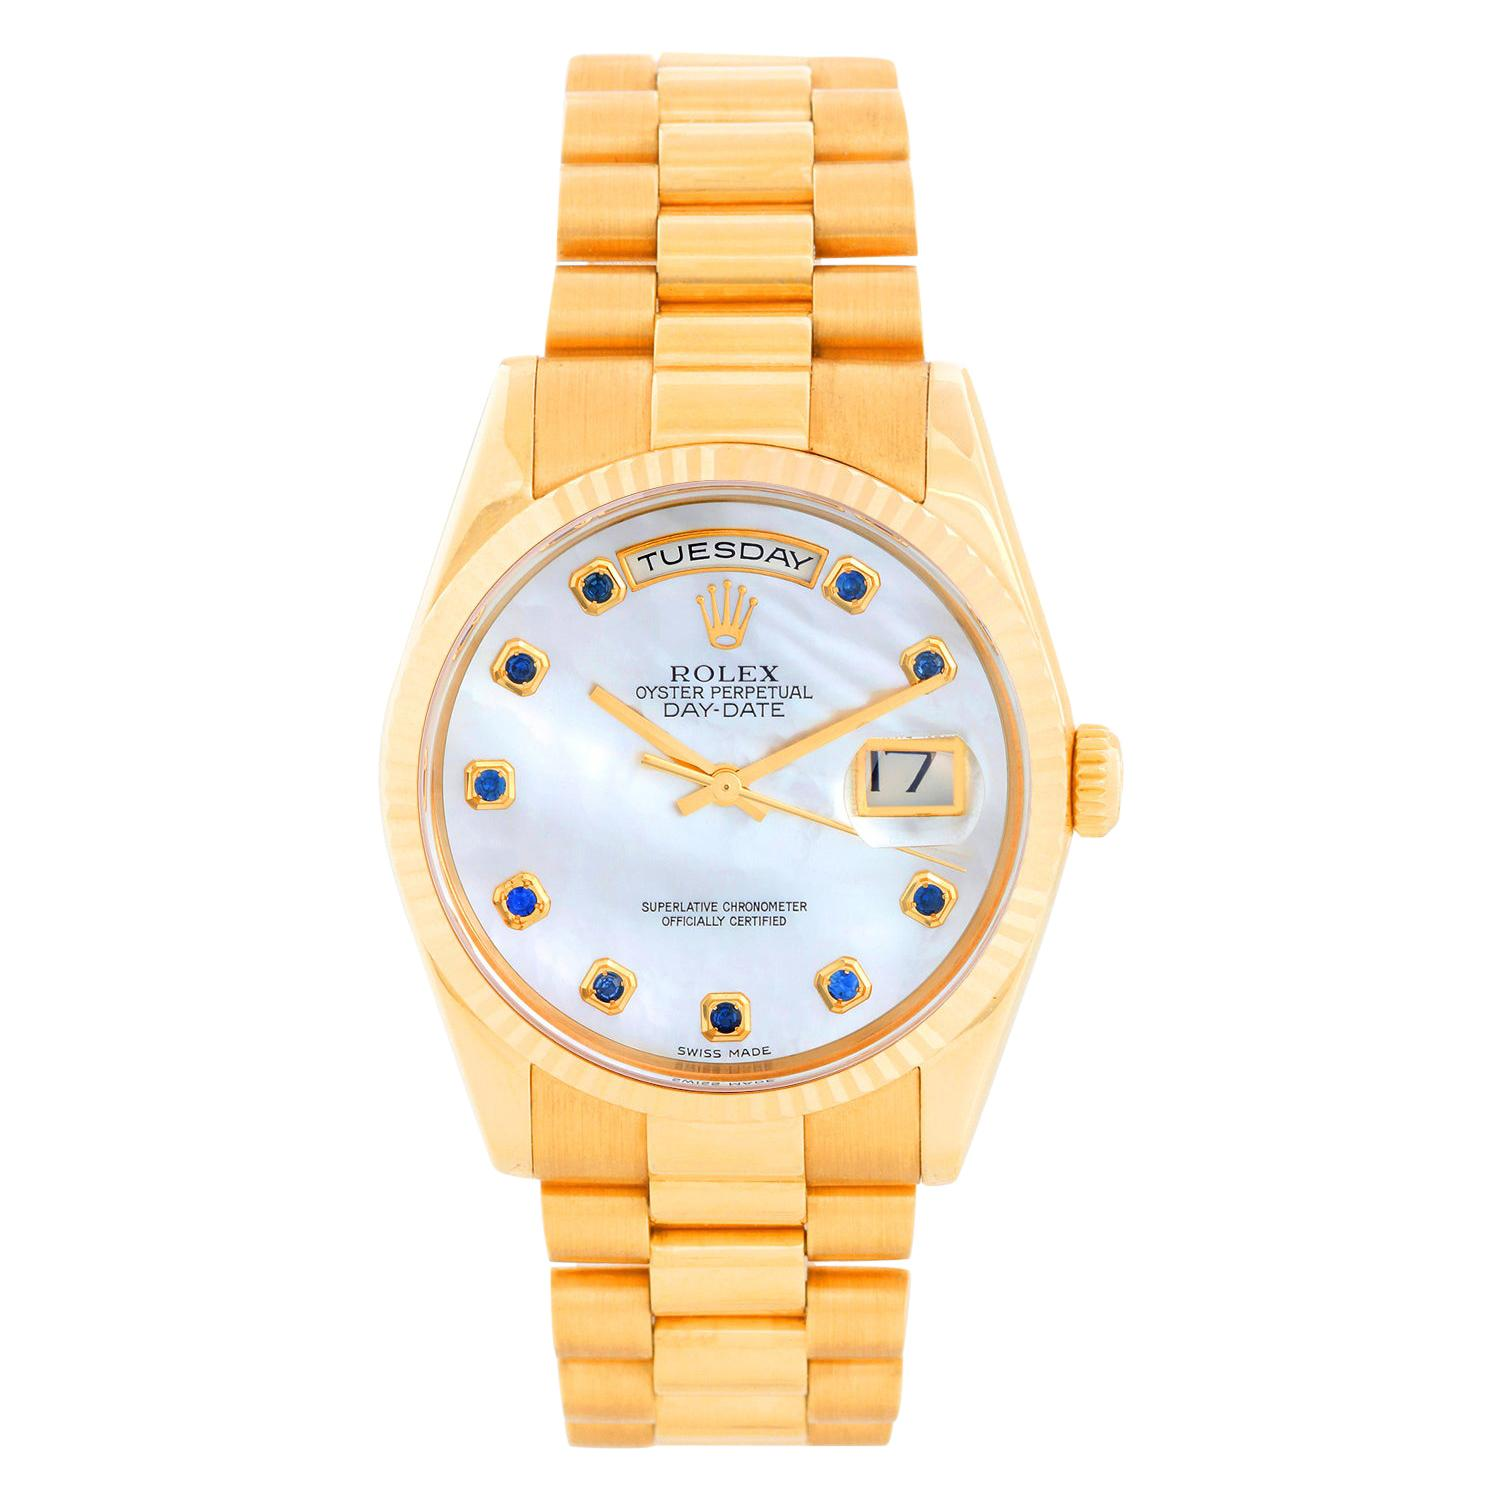 Rolex President Day-Date Men's Watch 118238